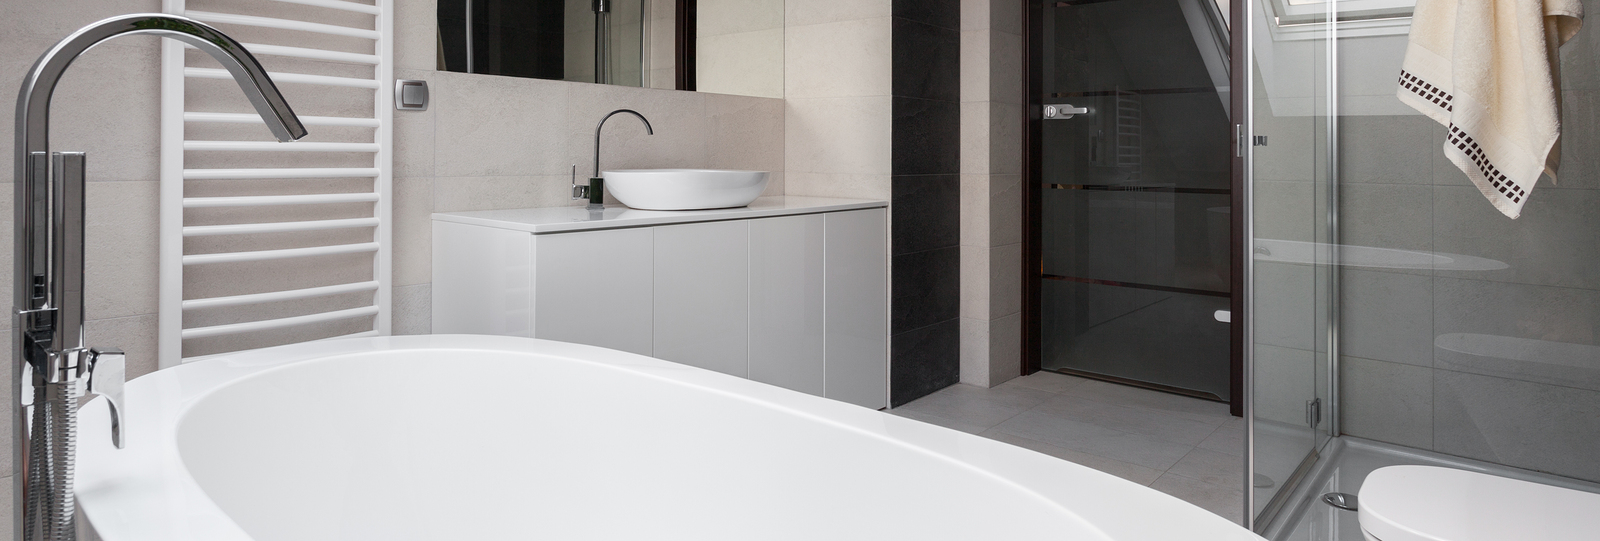 Close-up of bathtub in luxury modern bathroom